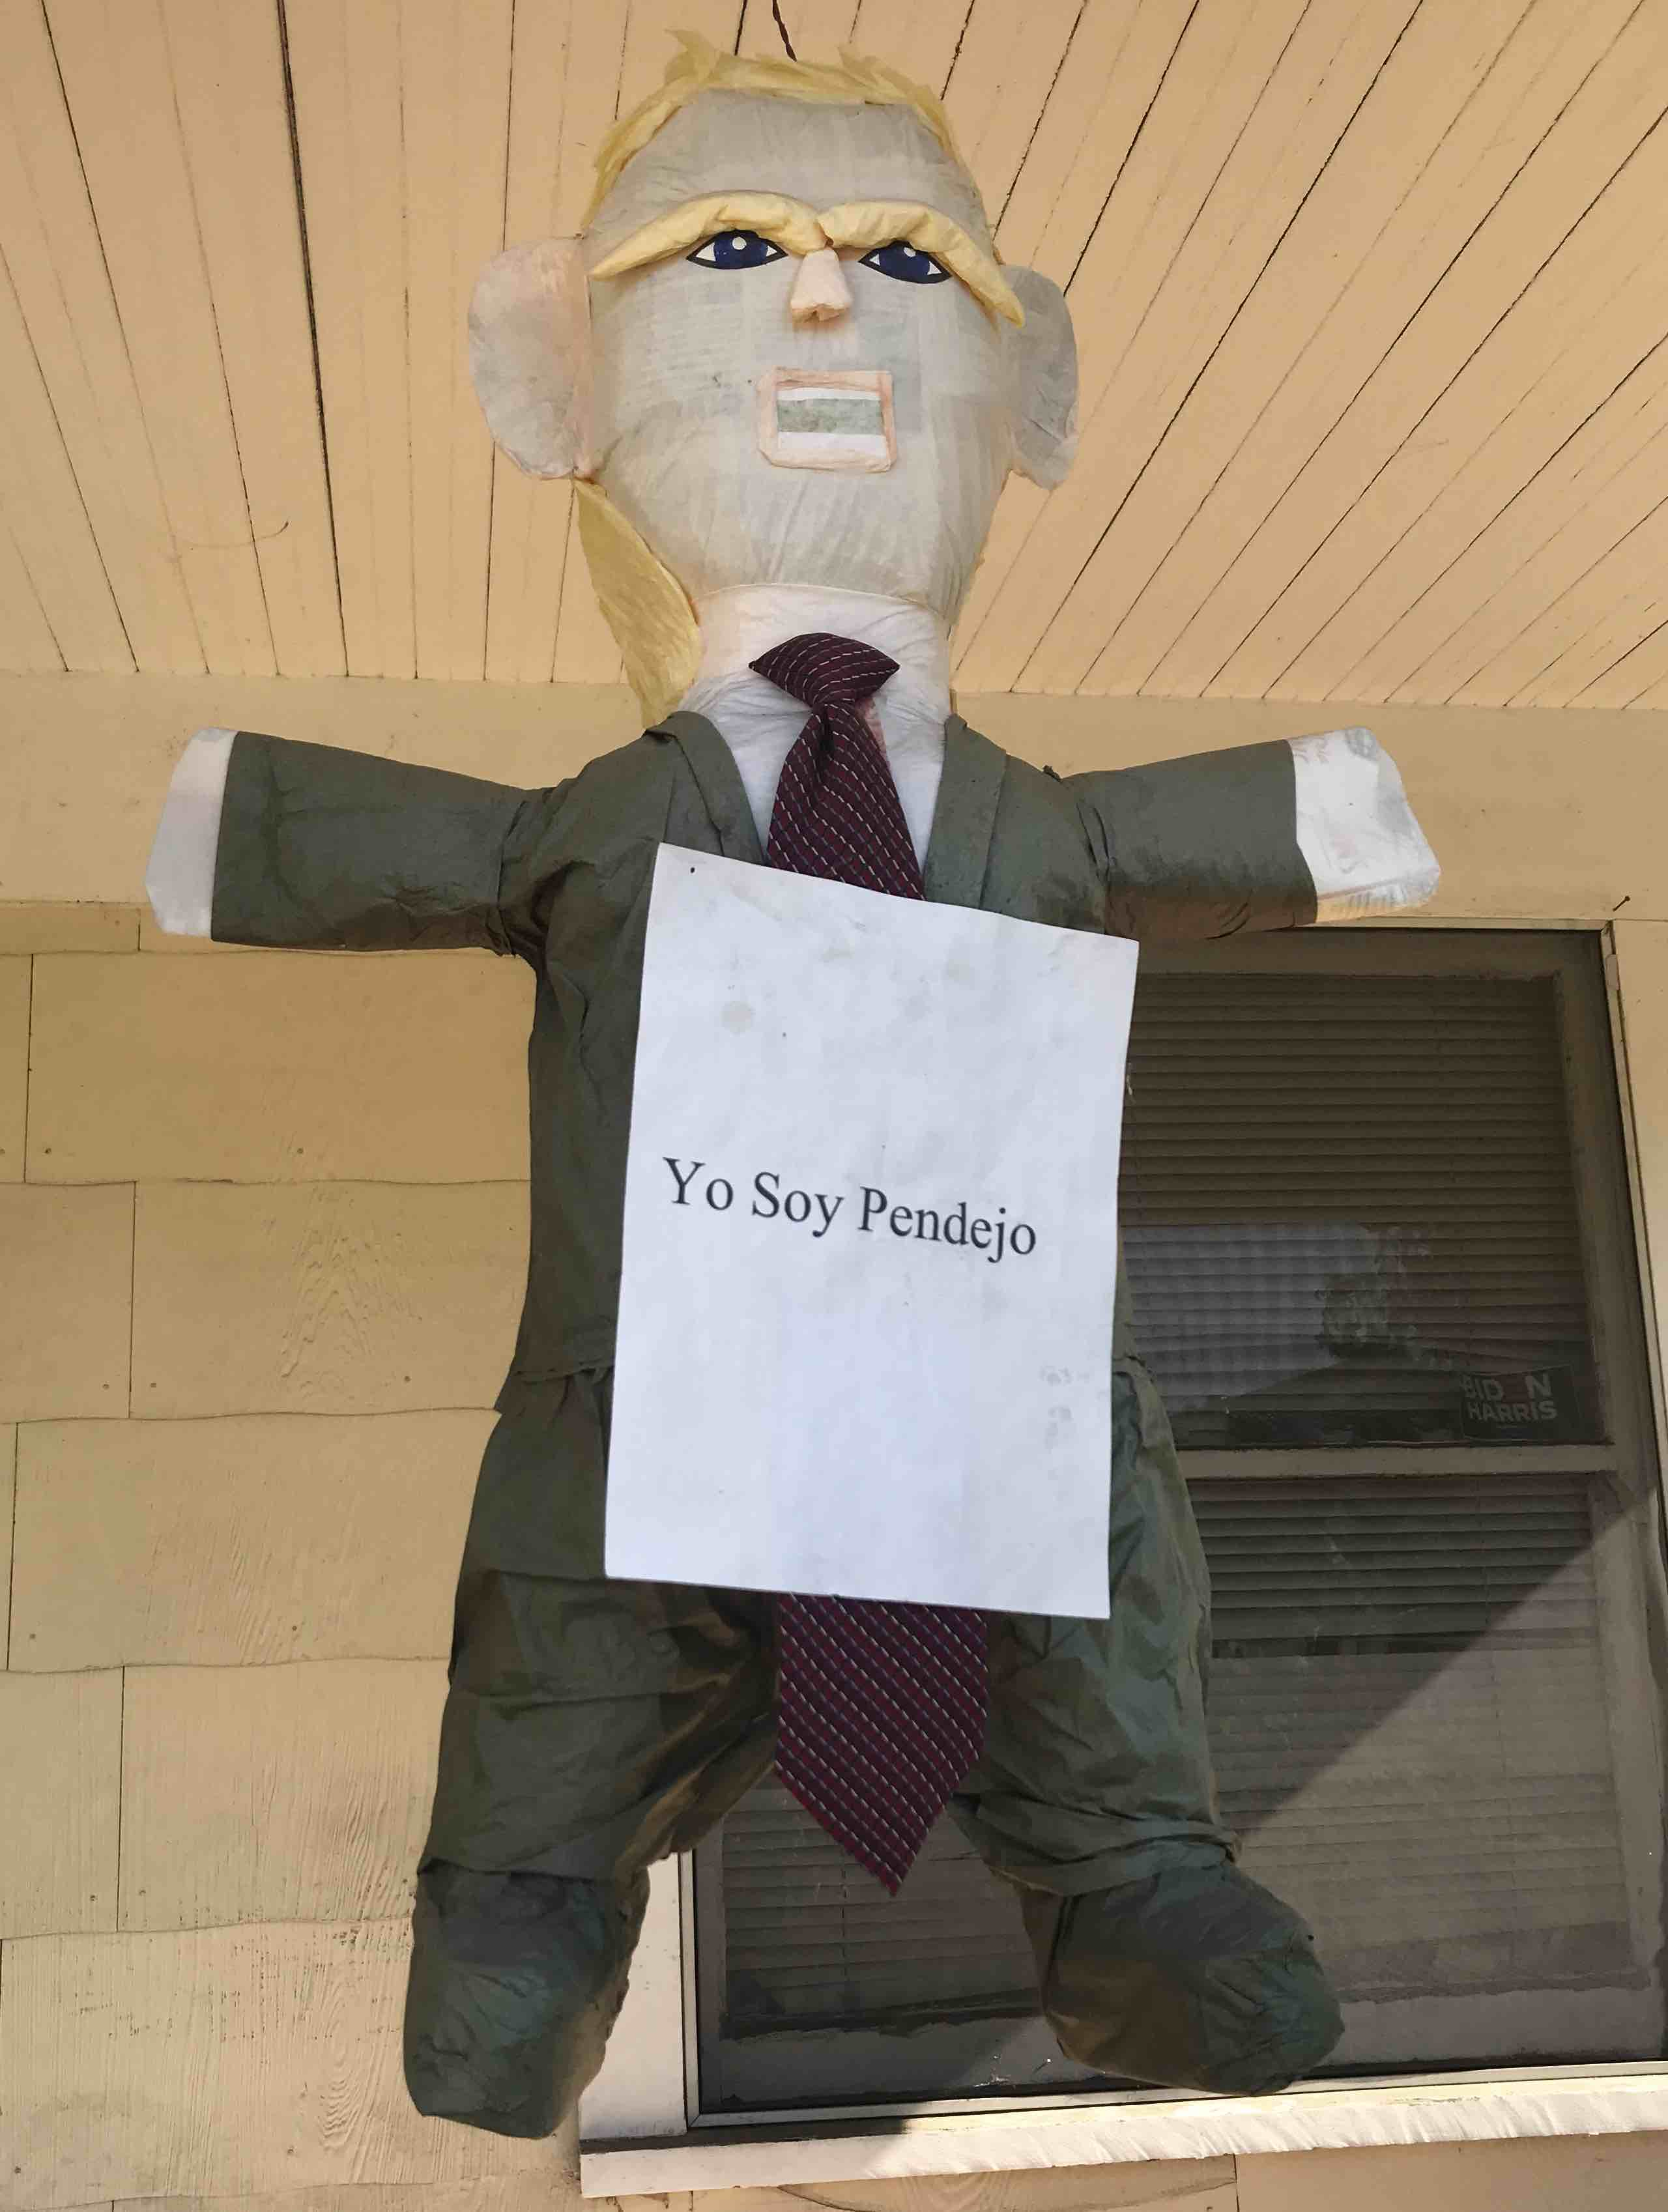 A Trump pinata with a 'Yo soy pendejo' sign attached